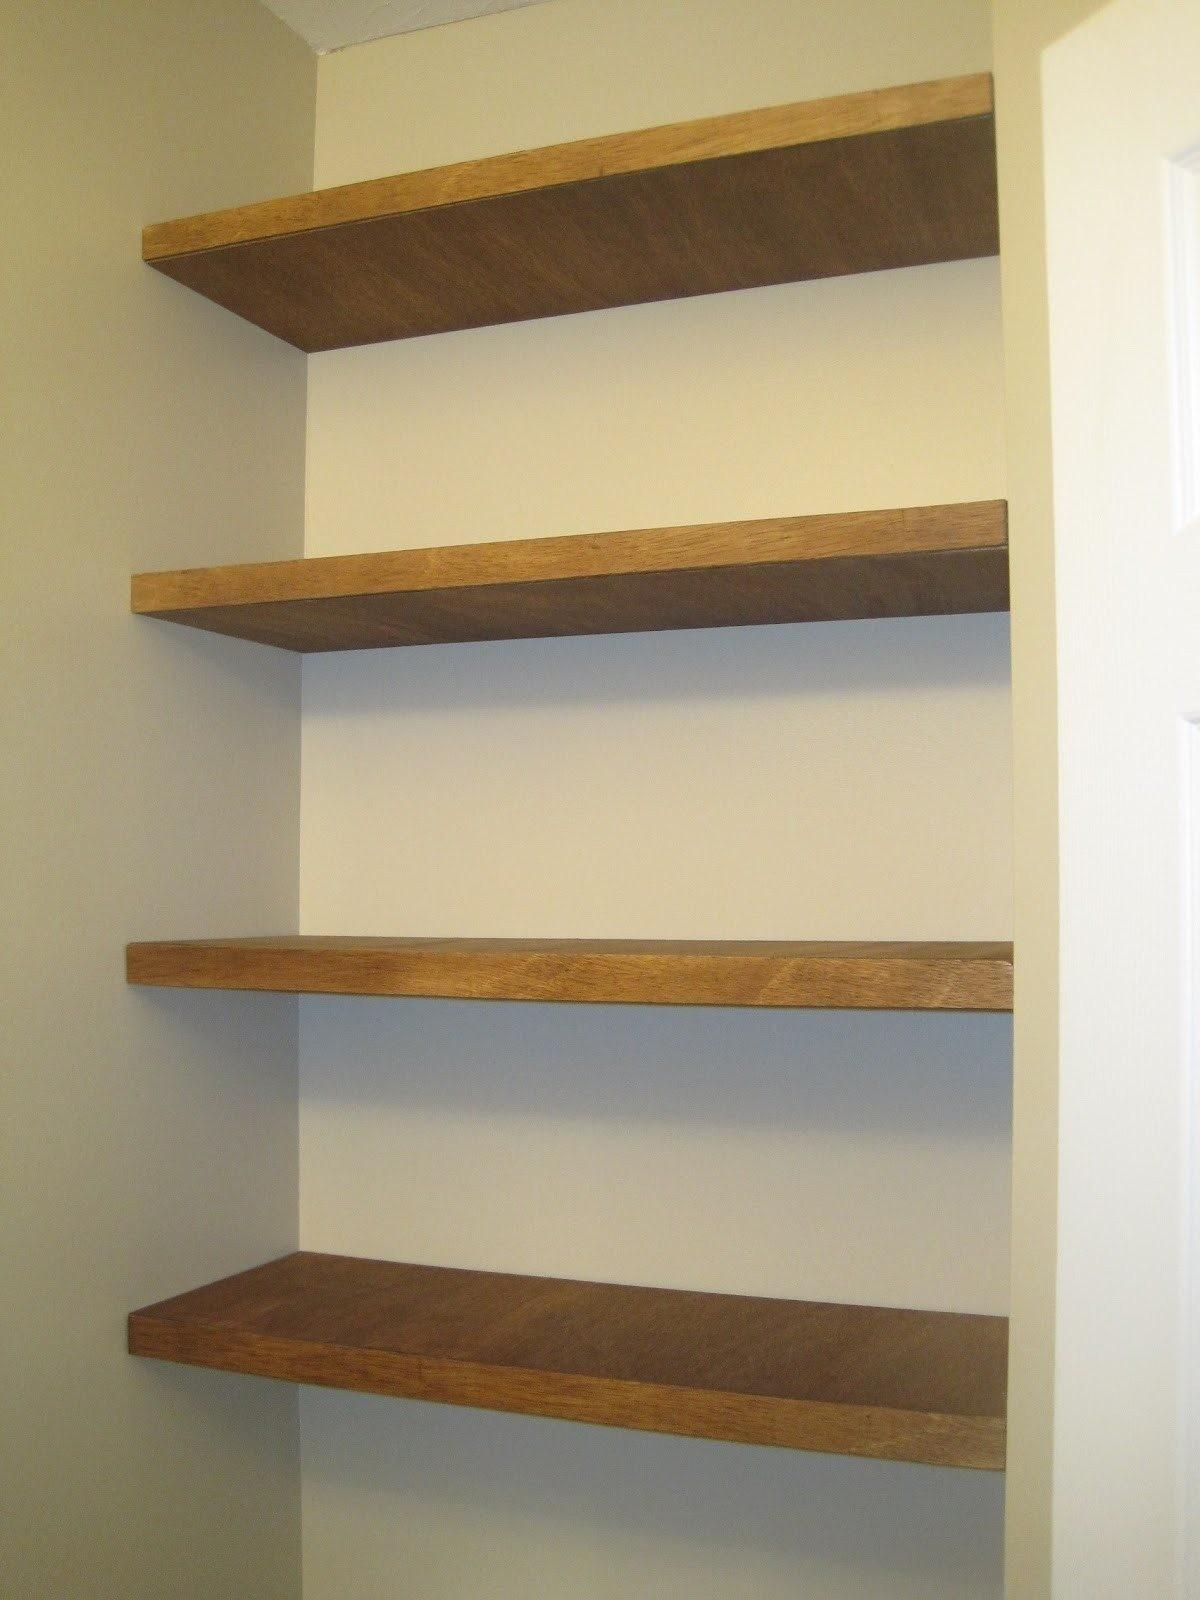 Wall Mounted Bookshelves Diy American Hwy